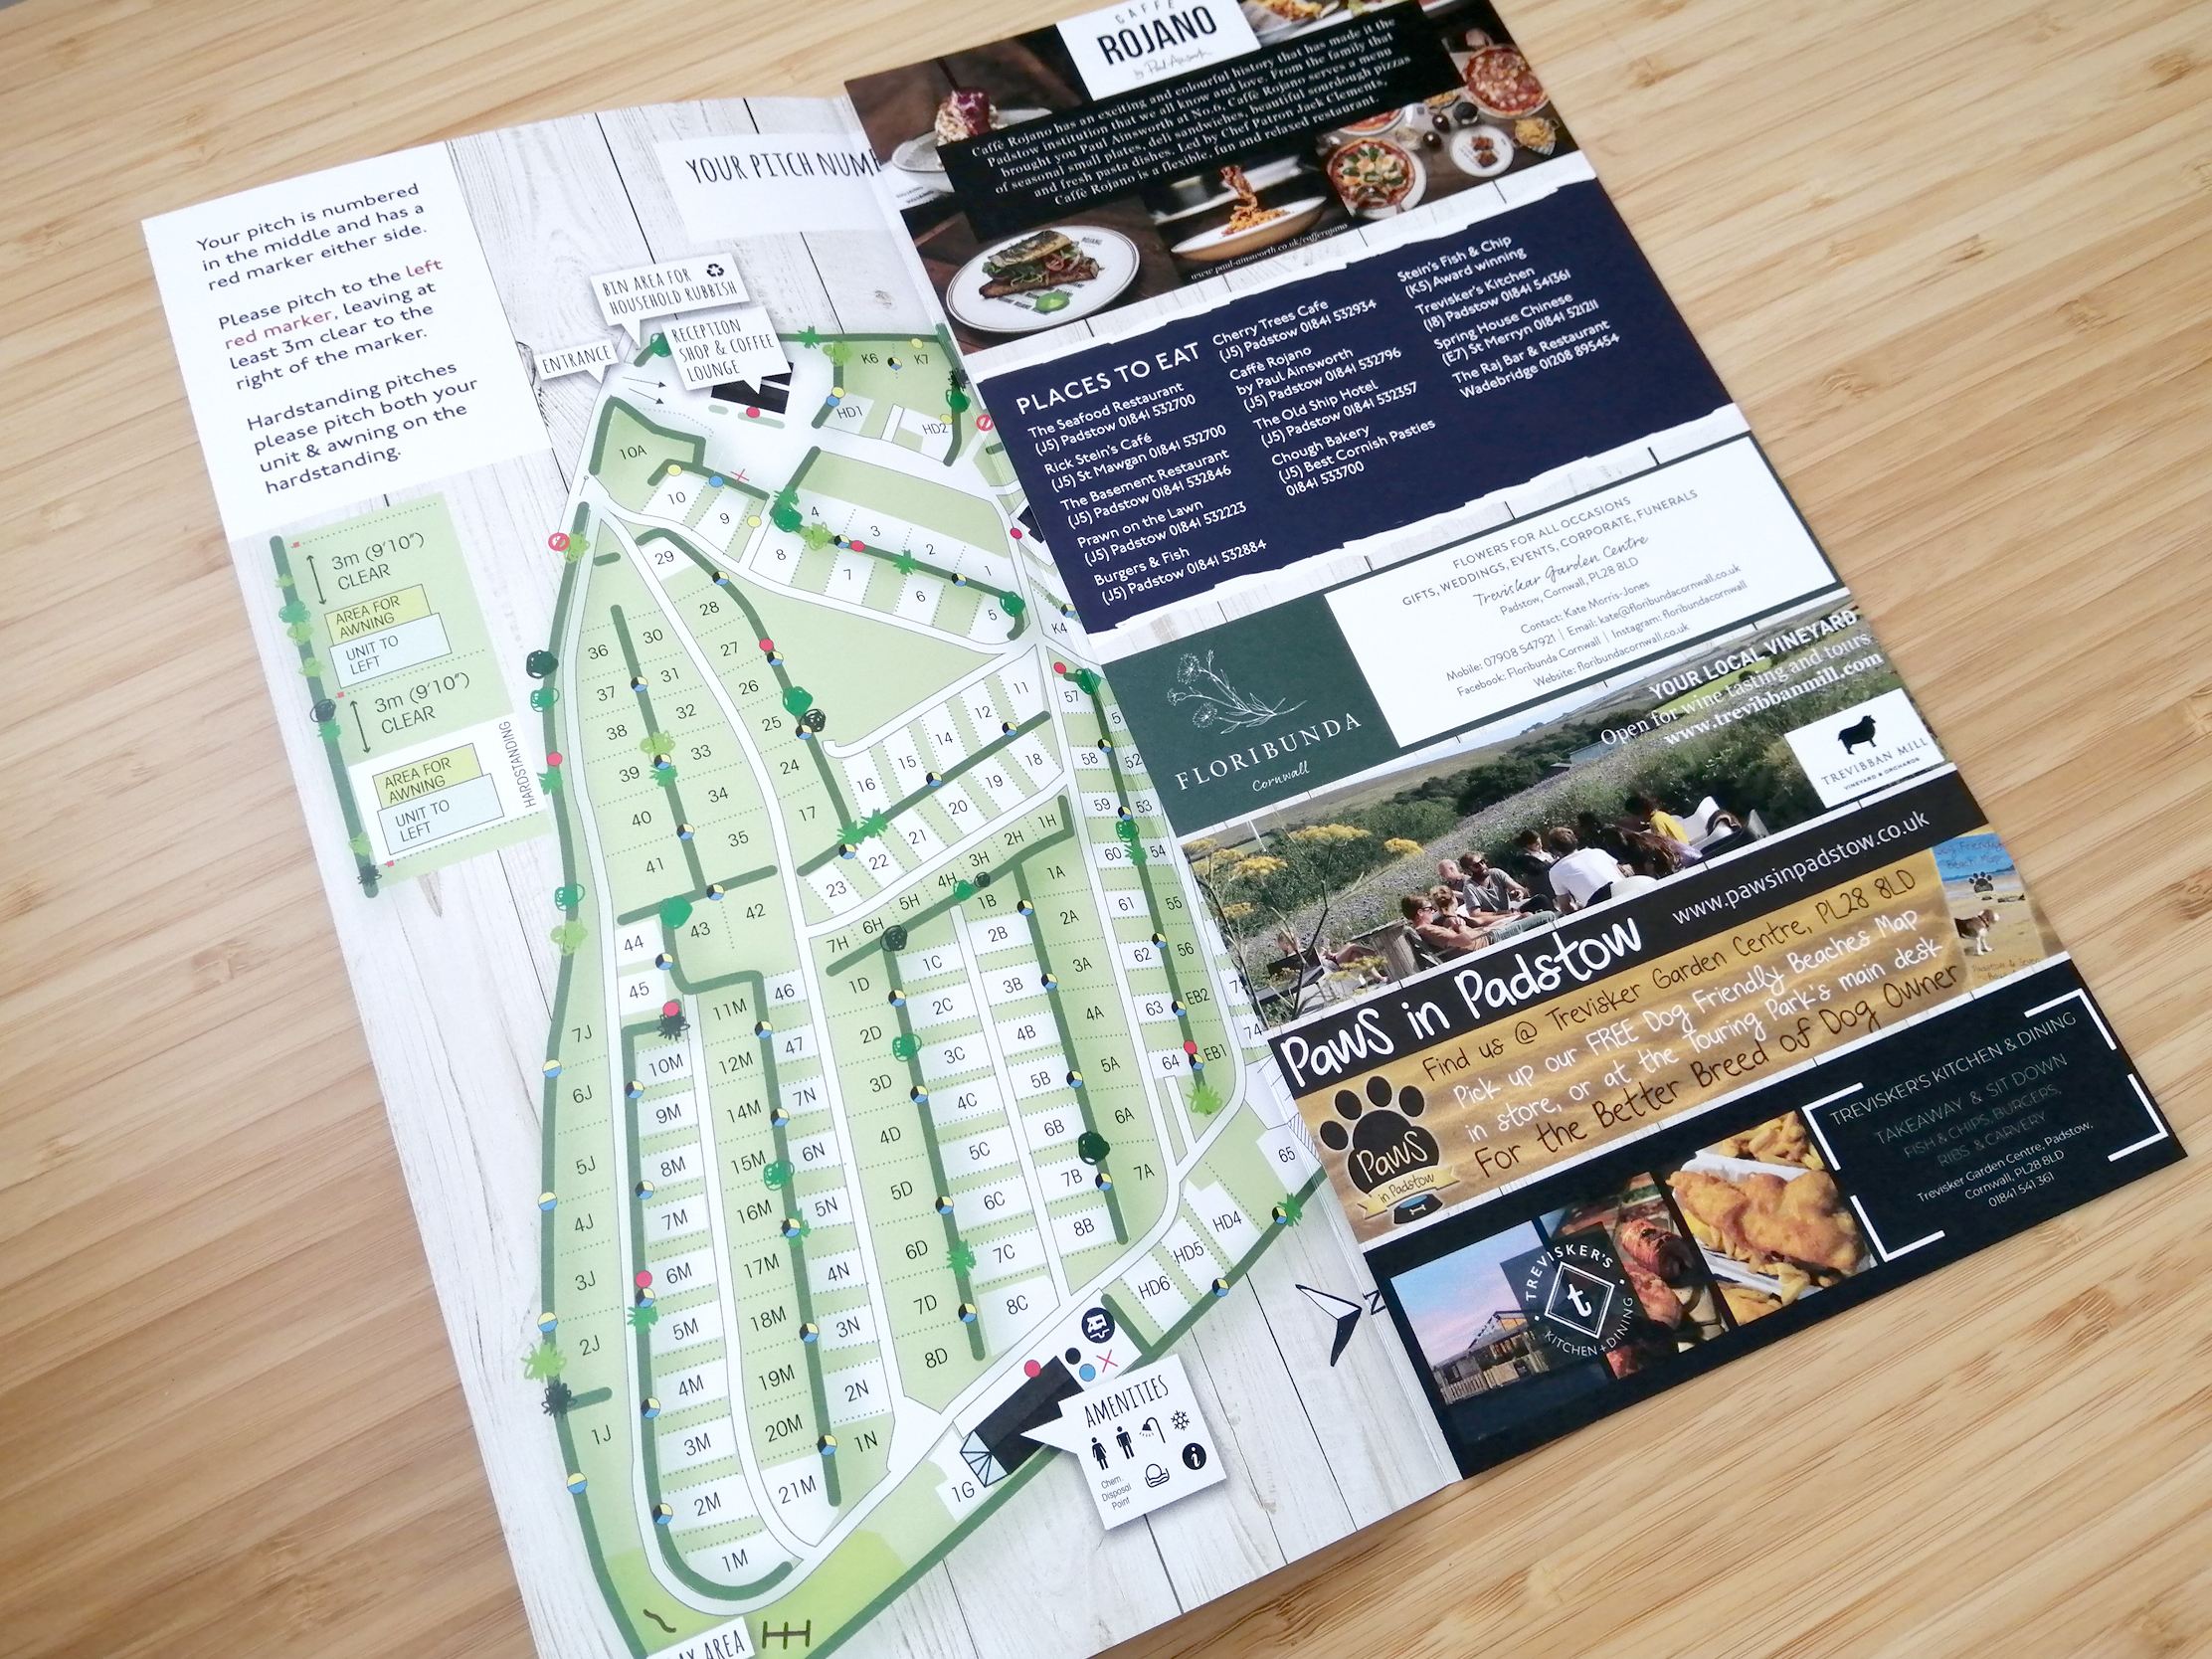 Padstow Holiday Village Map Welcome Leaflet with adverts